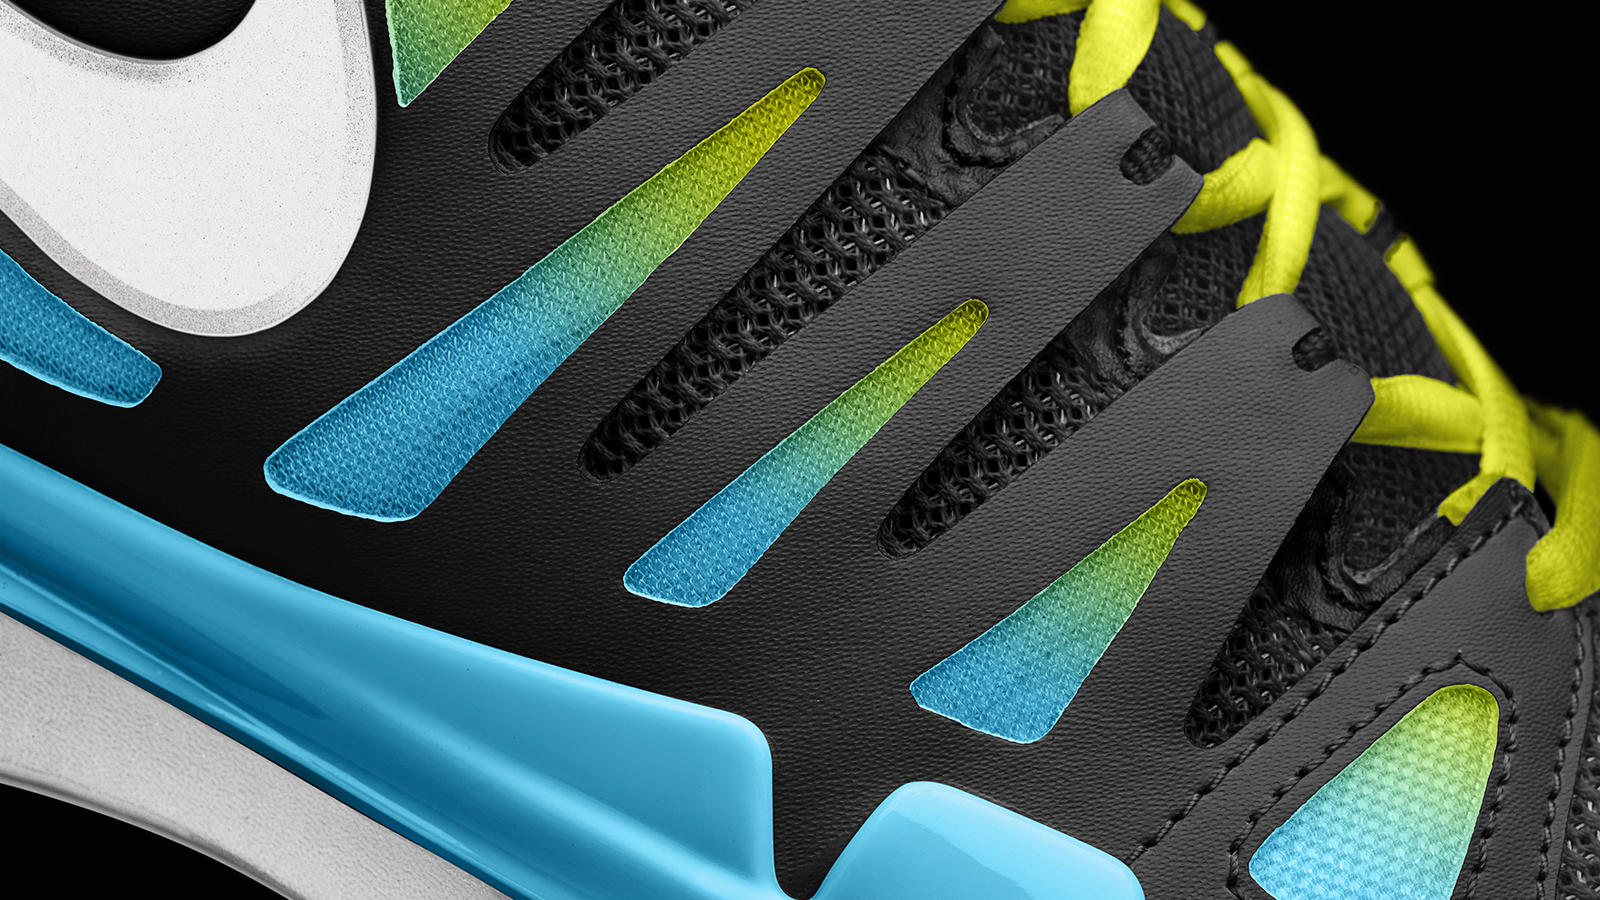 Sp13_TN_NIKEiD_Vapor9_Detail_6